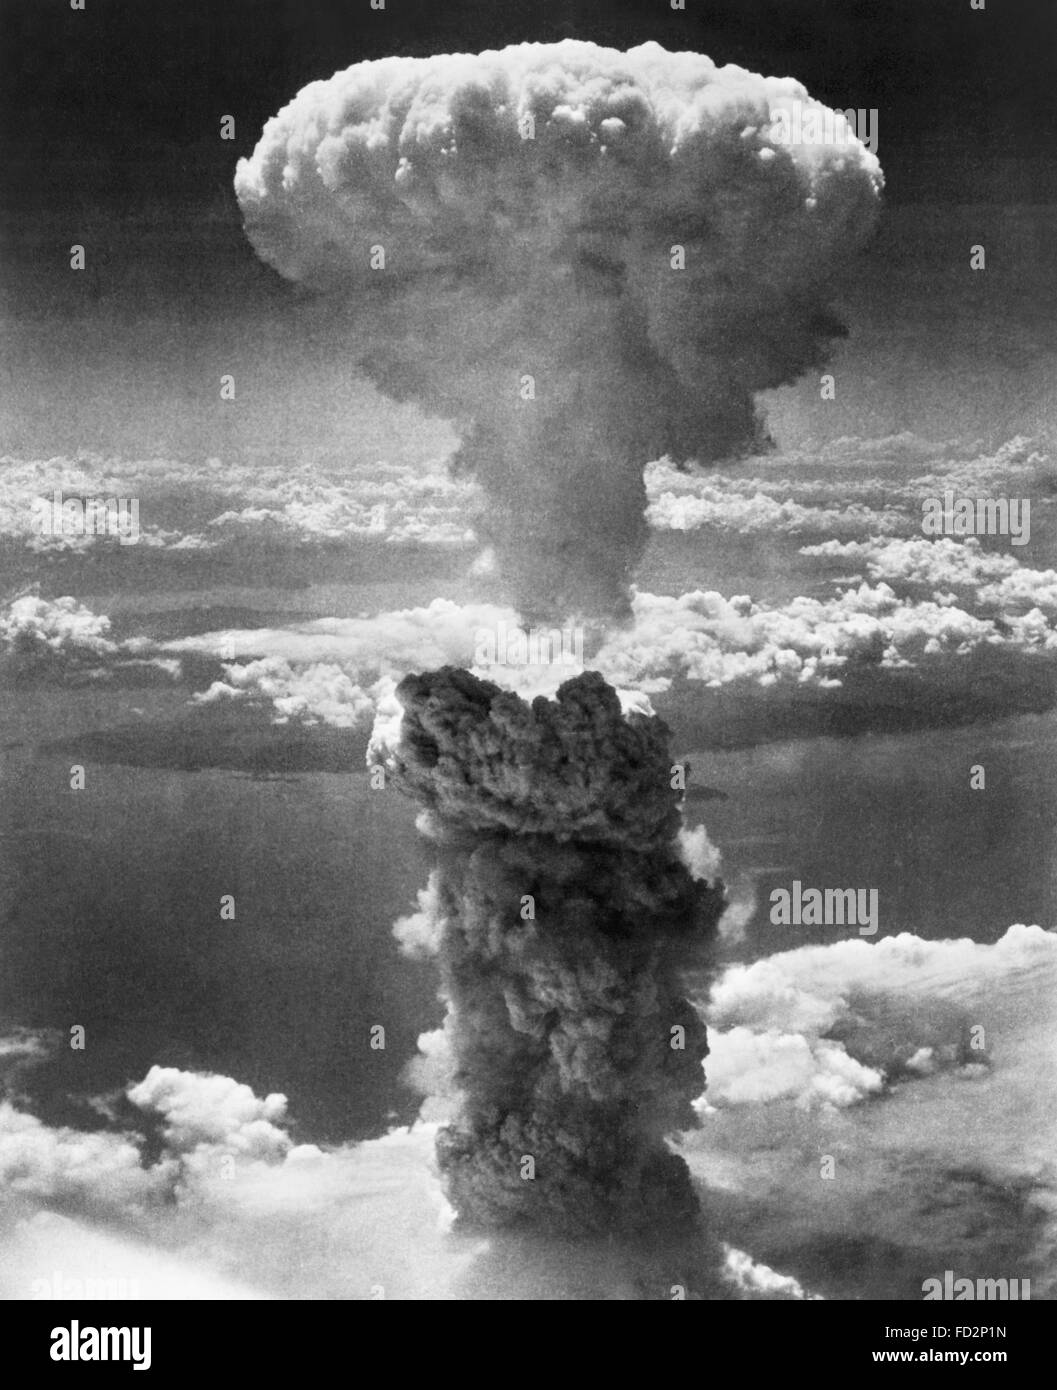 Mushroom cloud from the second atomic bomb, 'Fat Man', dropped on Nagasaki, Japan in WWII. August 9th 1945. - Stock Image